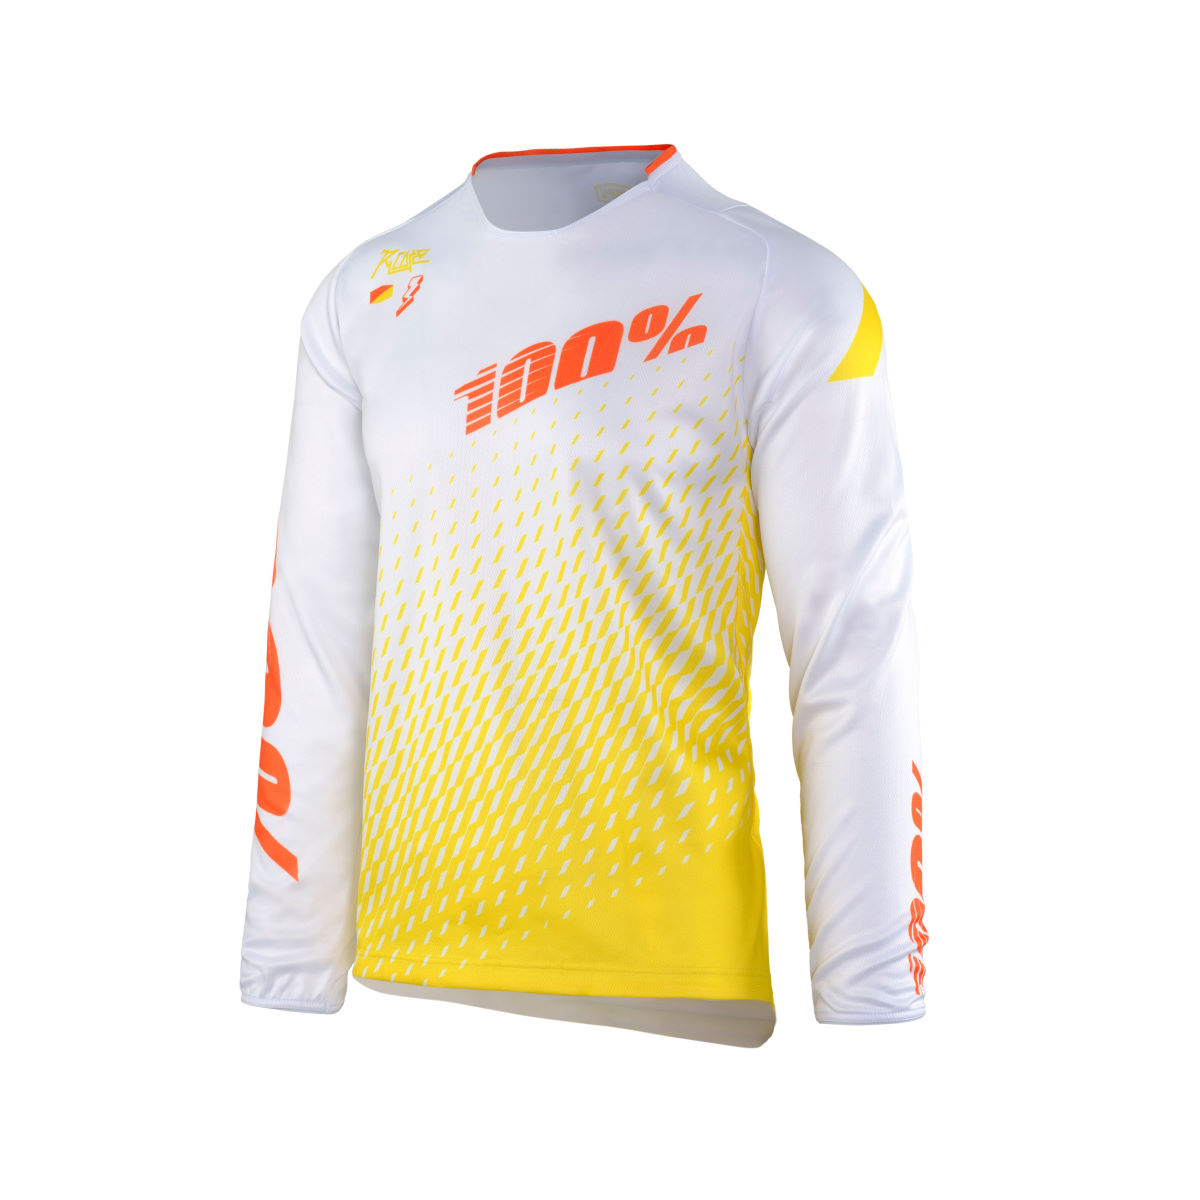 100% R-Core Supra DH LS Jersey - Maillots